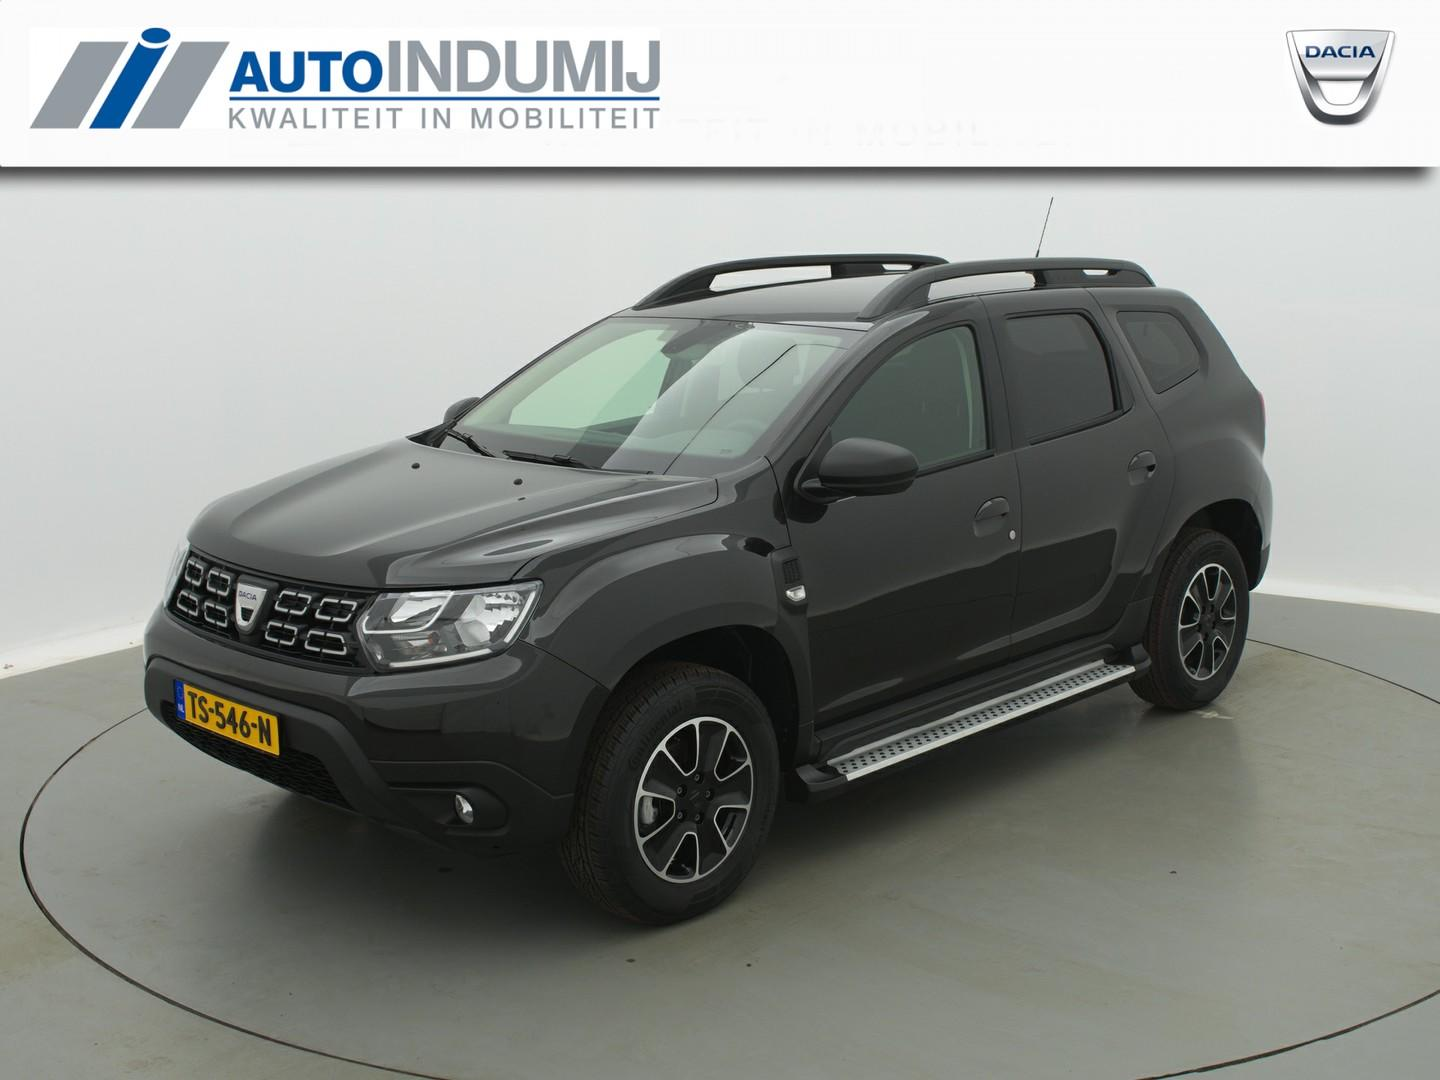 Dacia Duster Tce 125 comfort / pack intro / privacy glass / trekhaak / lichtmetalen velgen